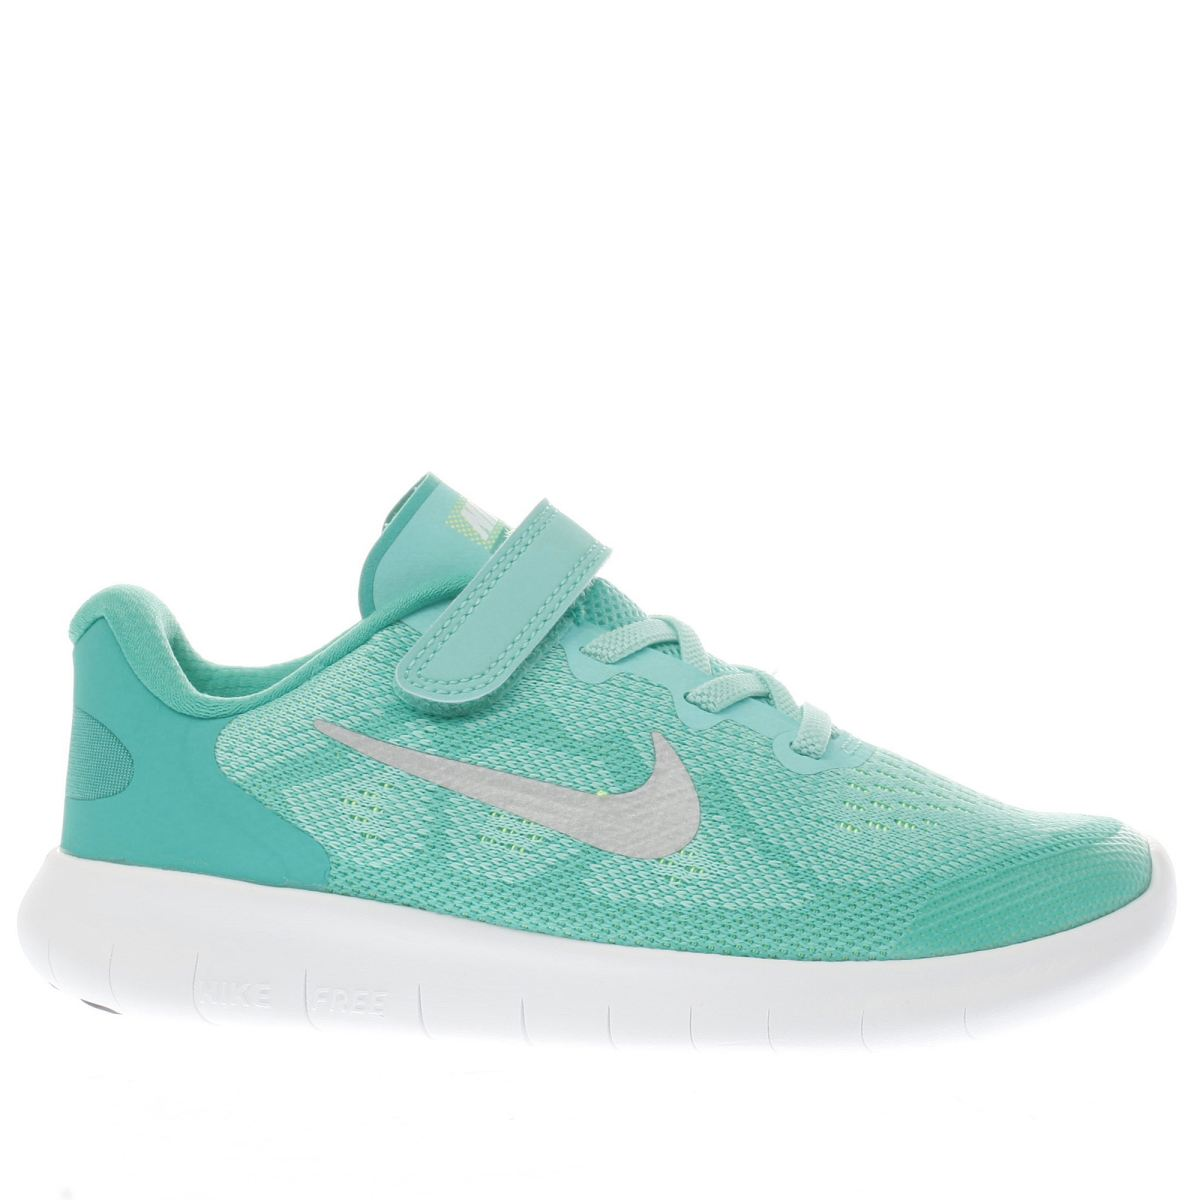 nike turquoise free run 2 Girls Junior Trainers